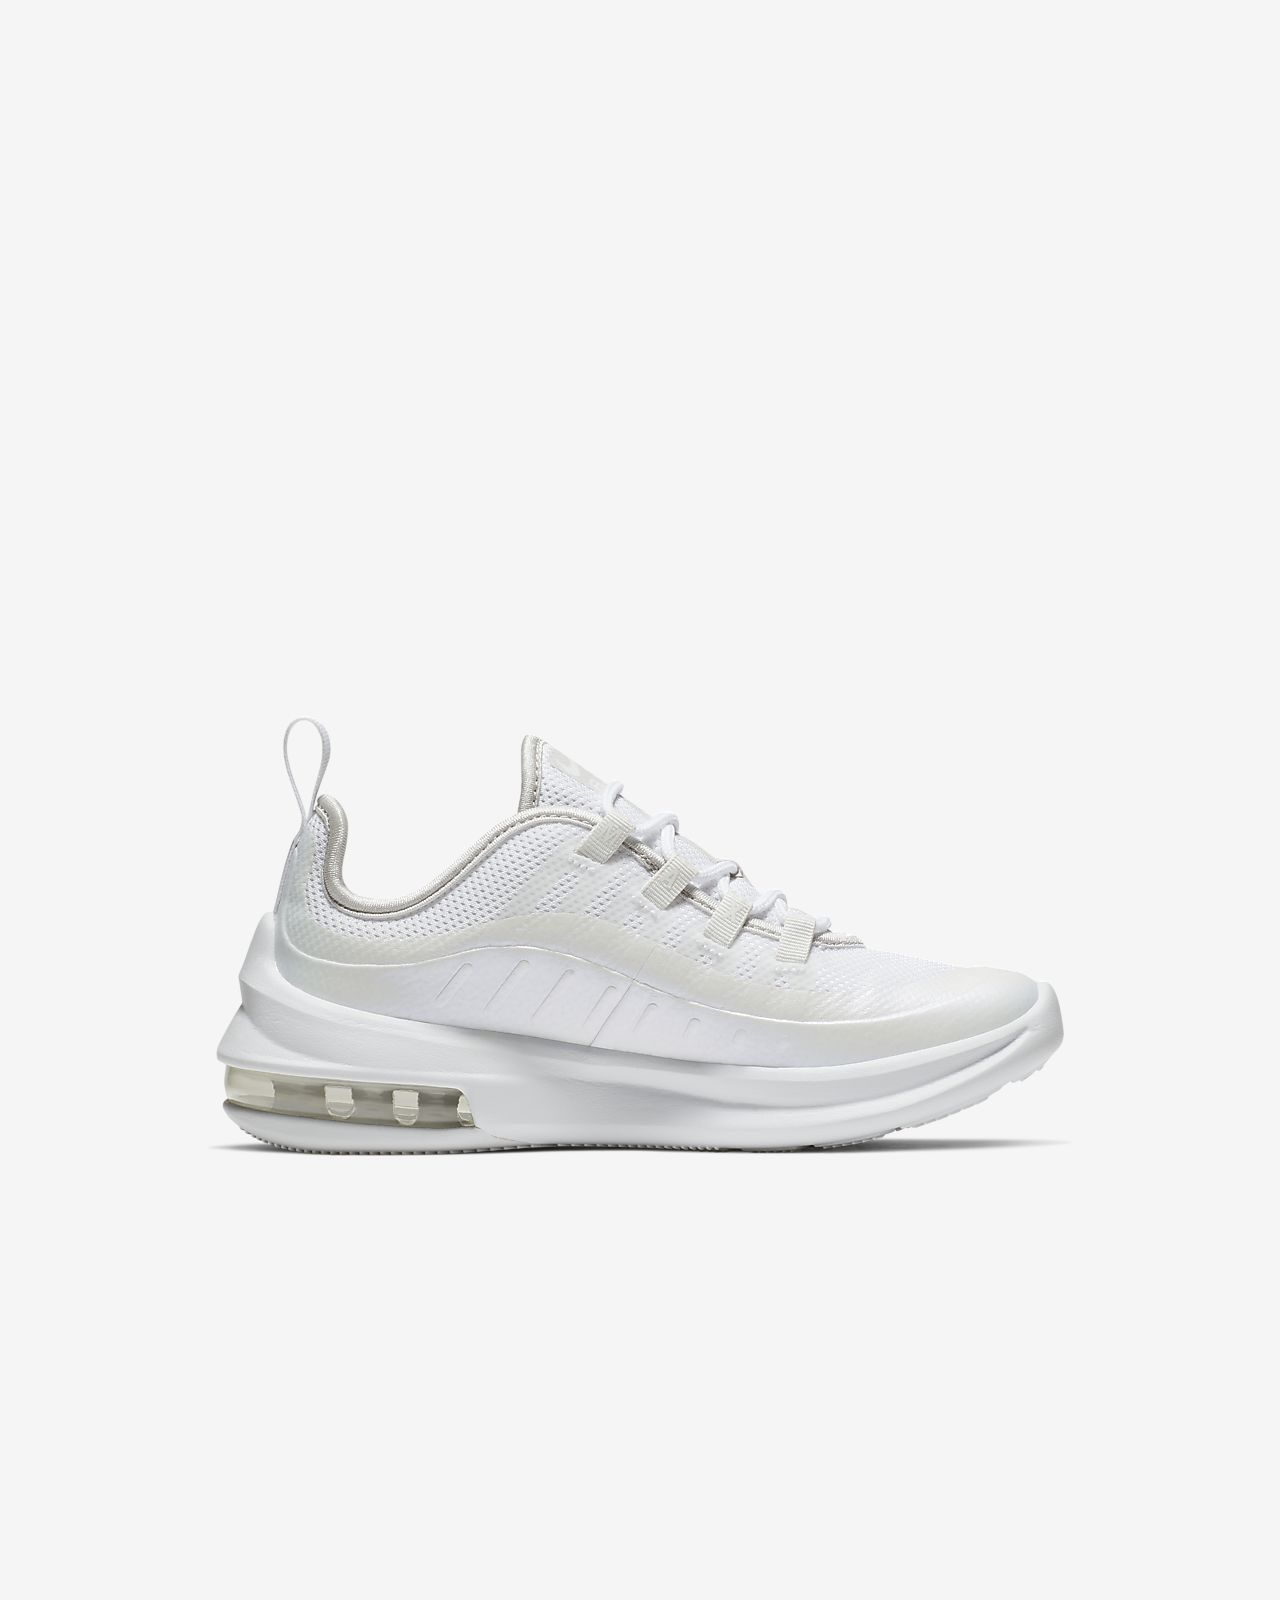 reputable site df99a 83864 ... Sko Nike Air Max Axis för små barn